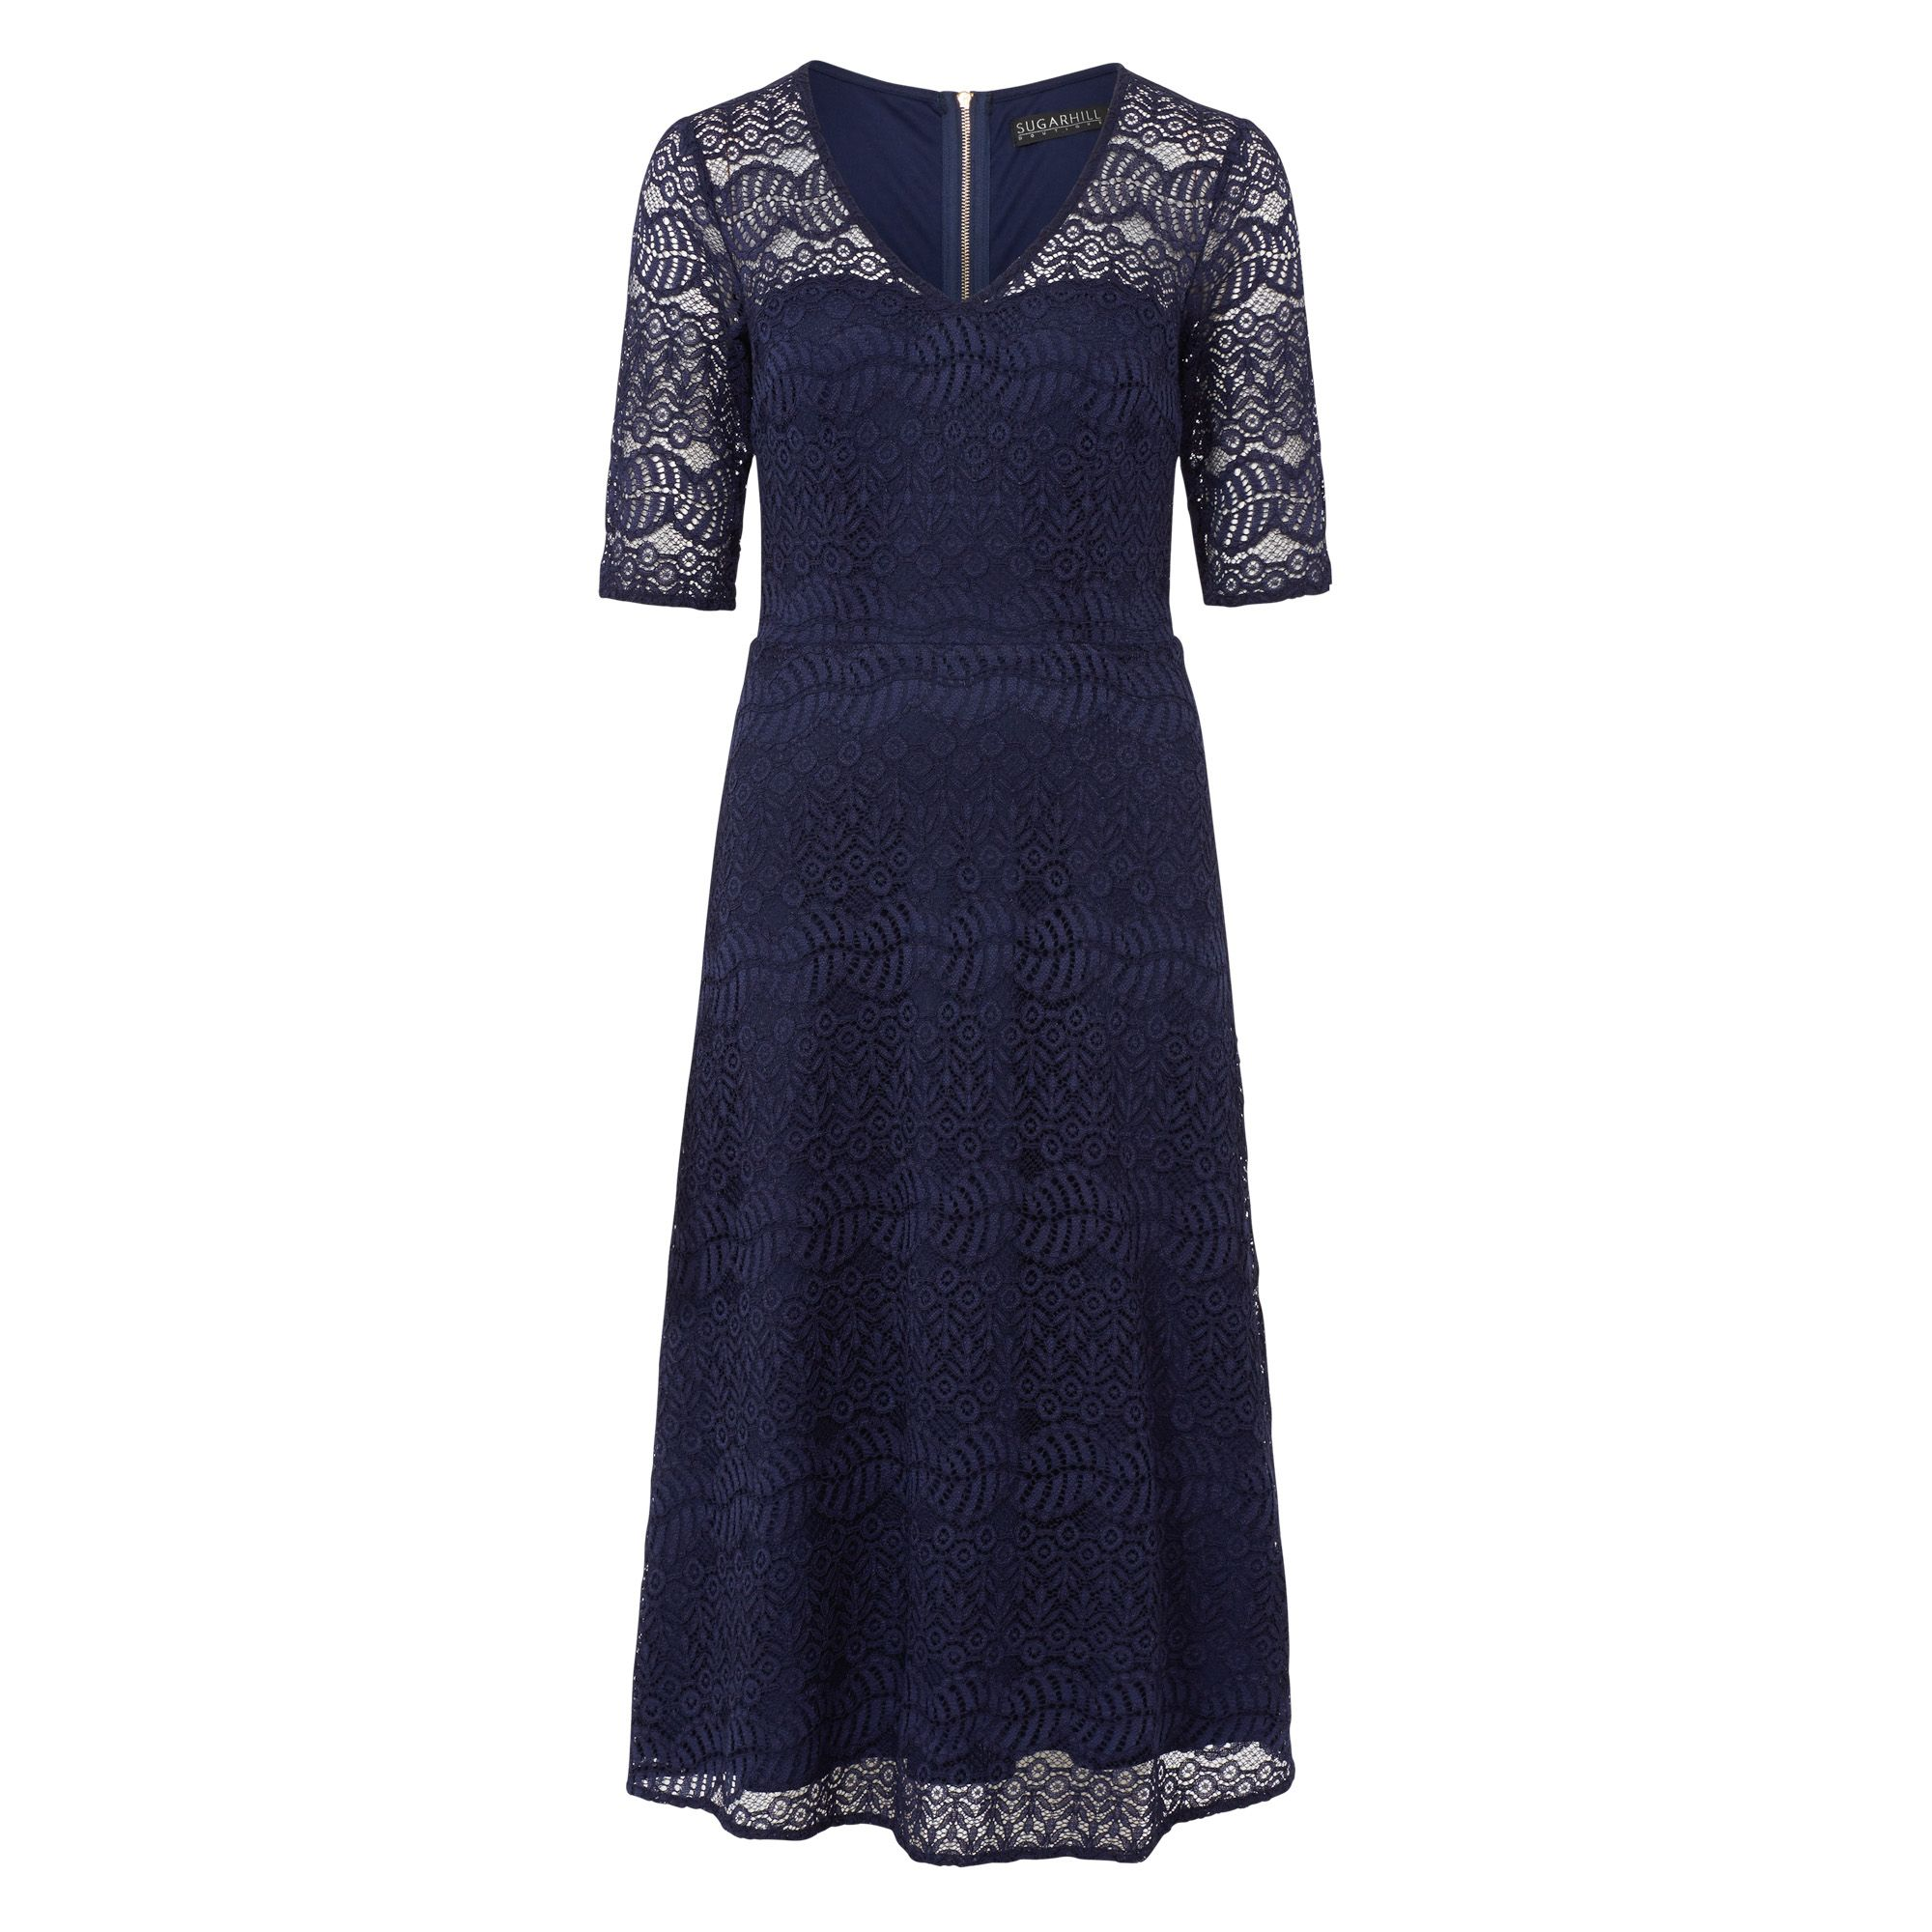 Sugarhill Boutique Imelda Navy Lace Dress, Blue